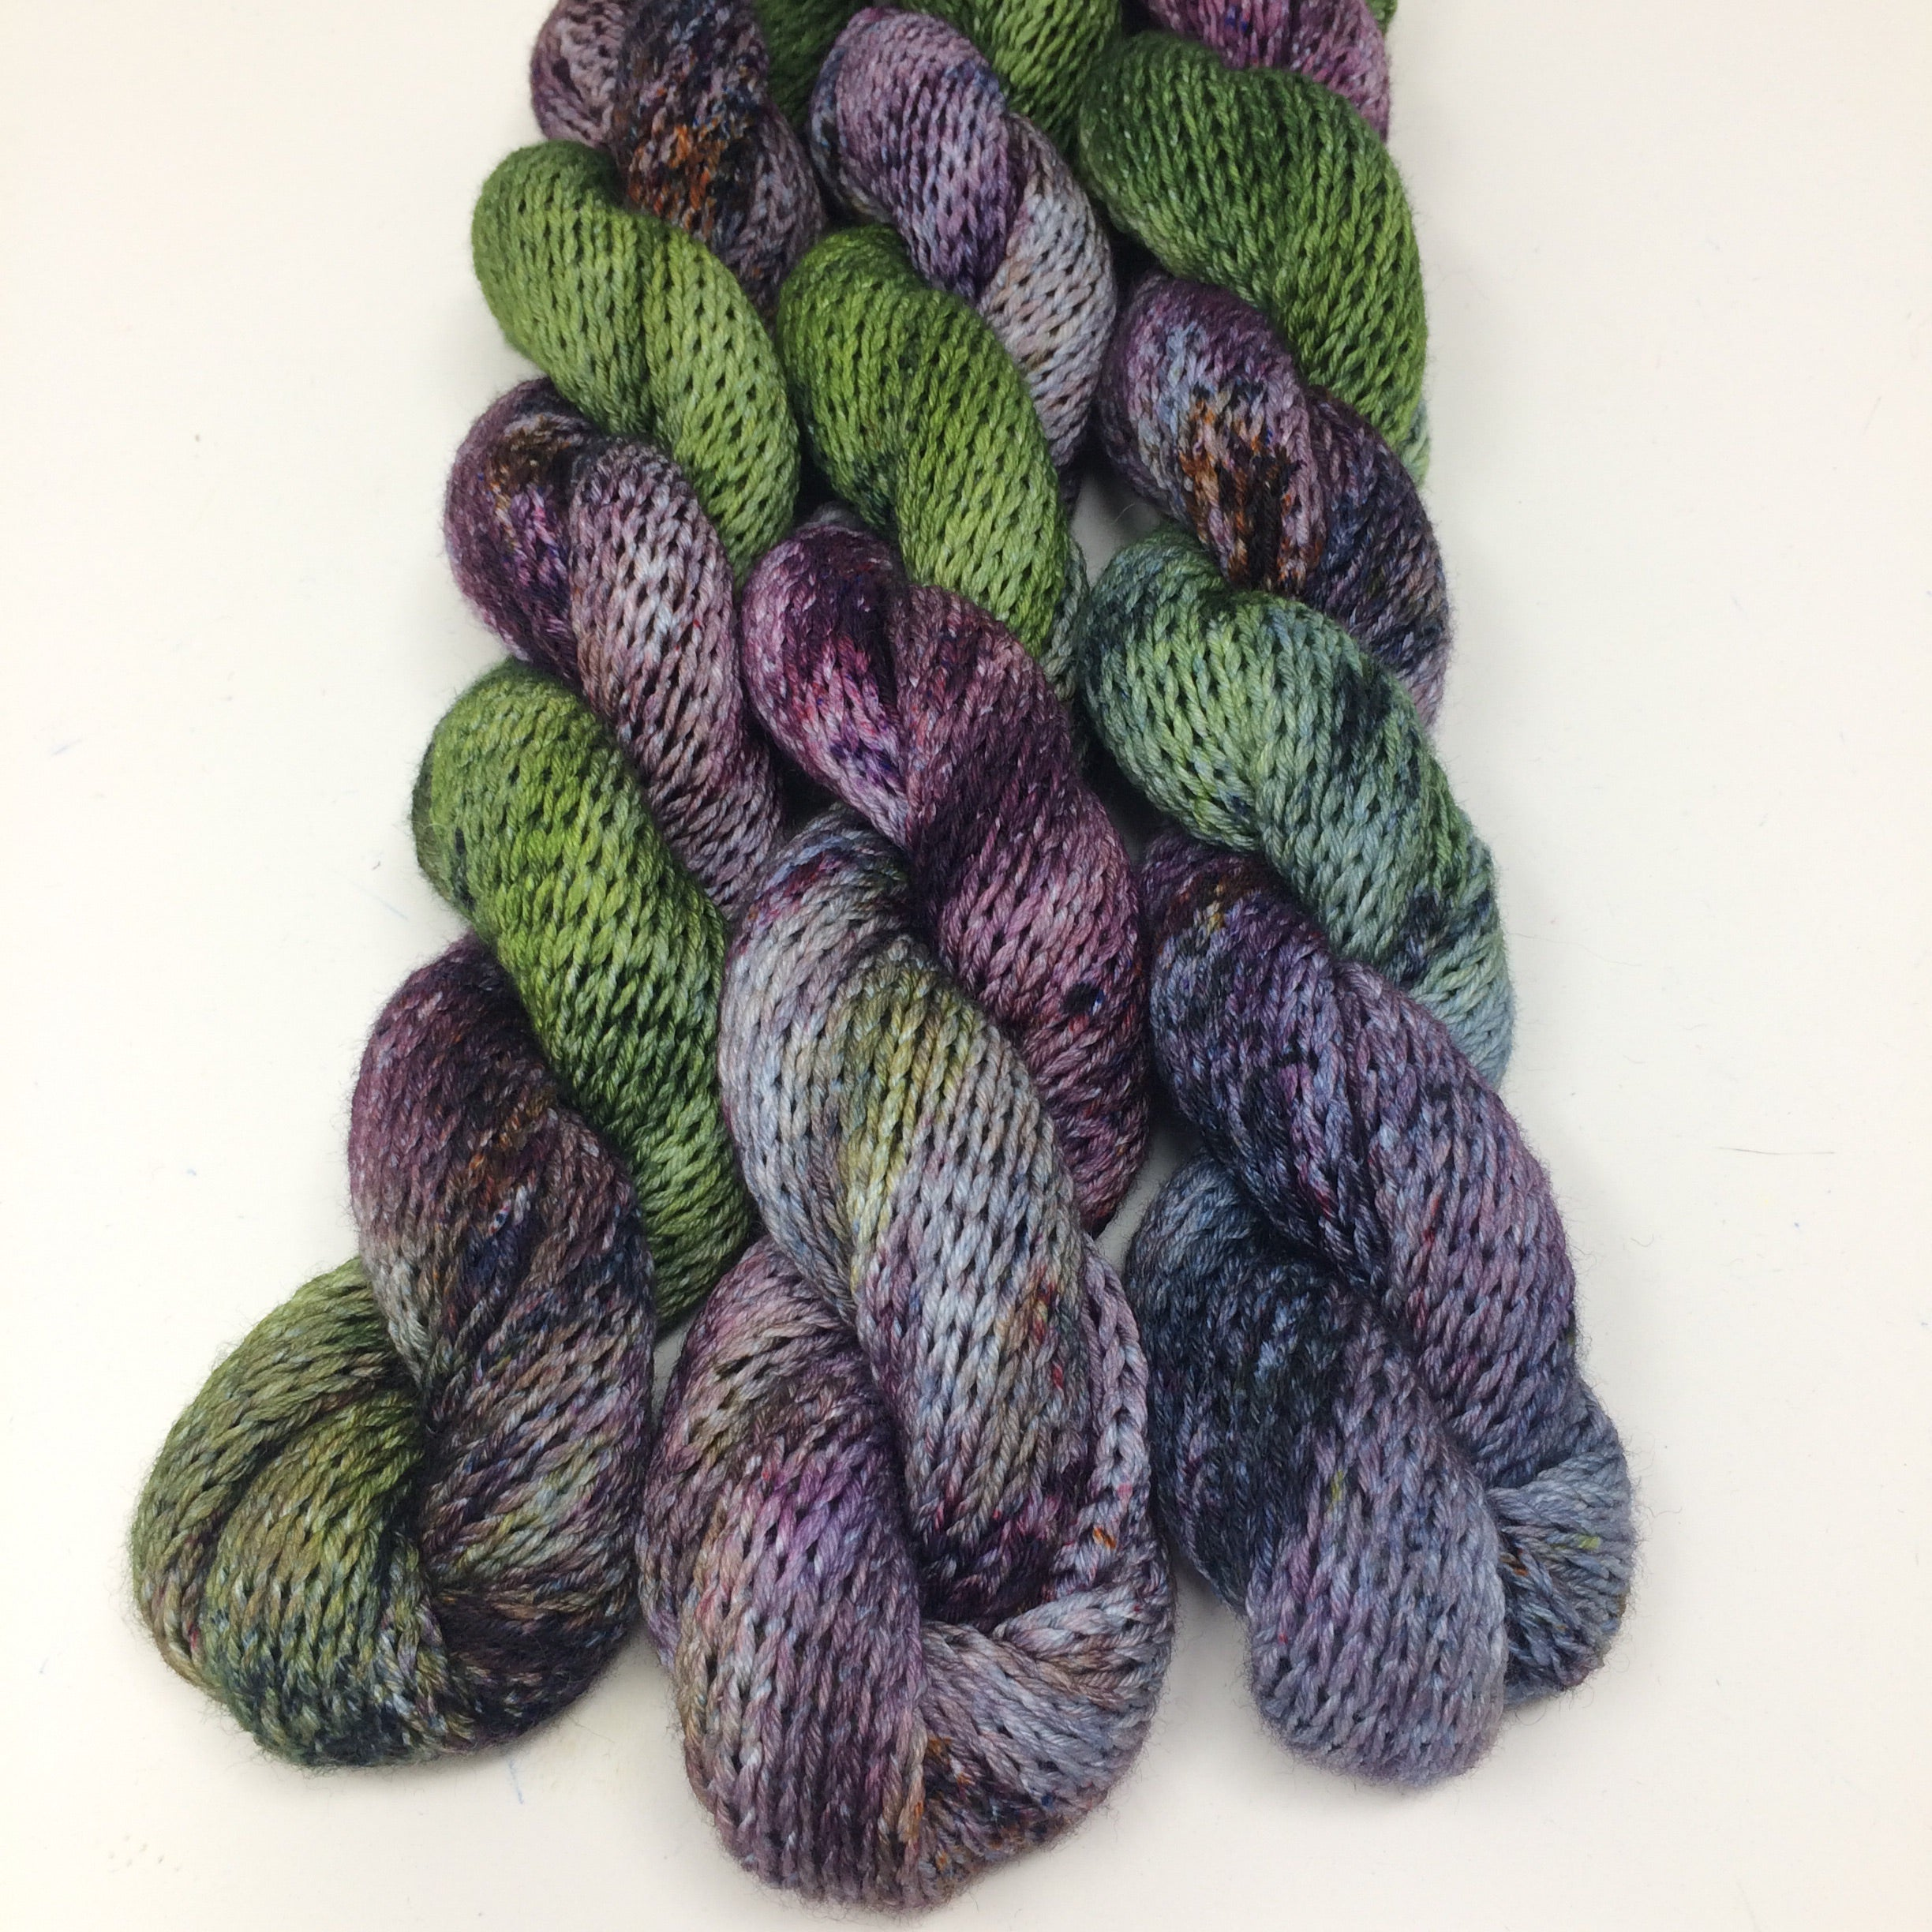 Novembers' Witch - double knit sock Blanks, make matching socks or wrist warmers